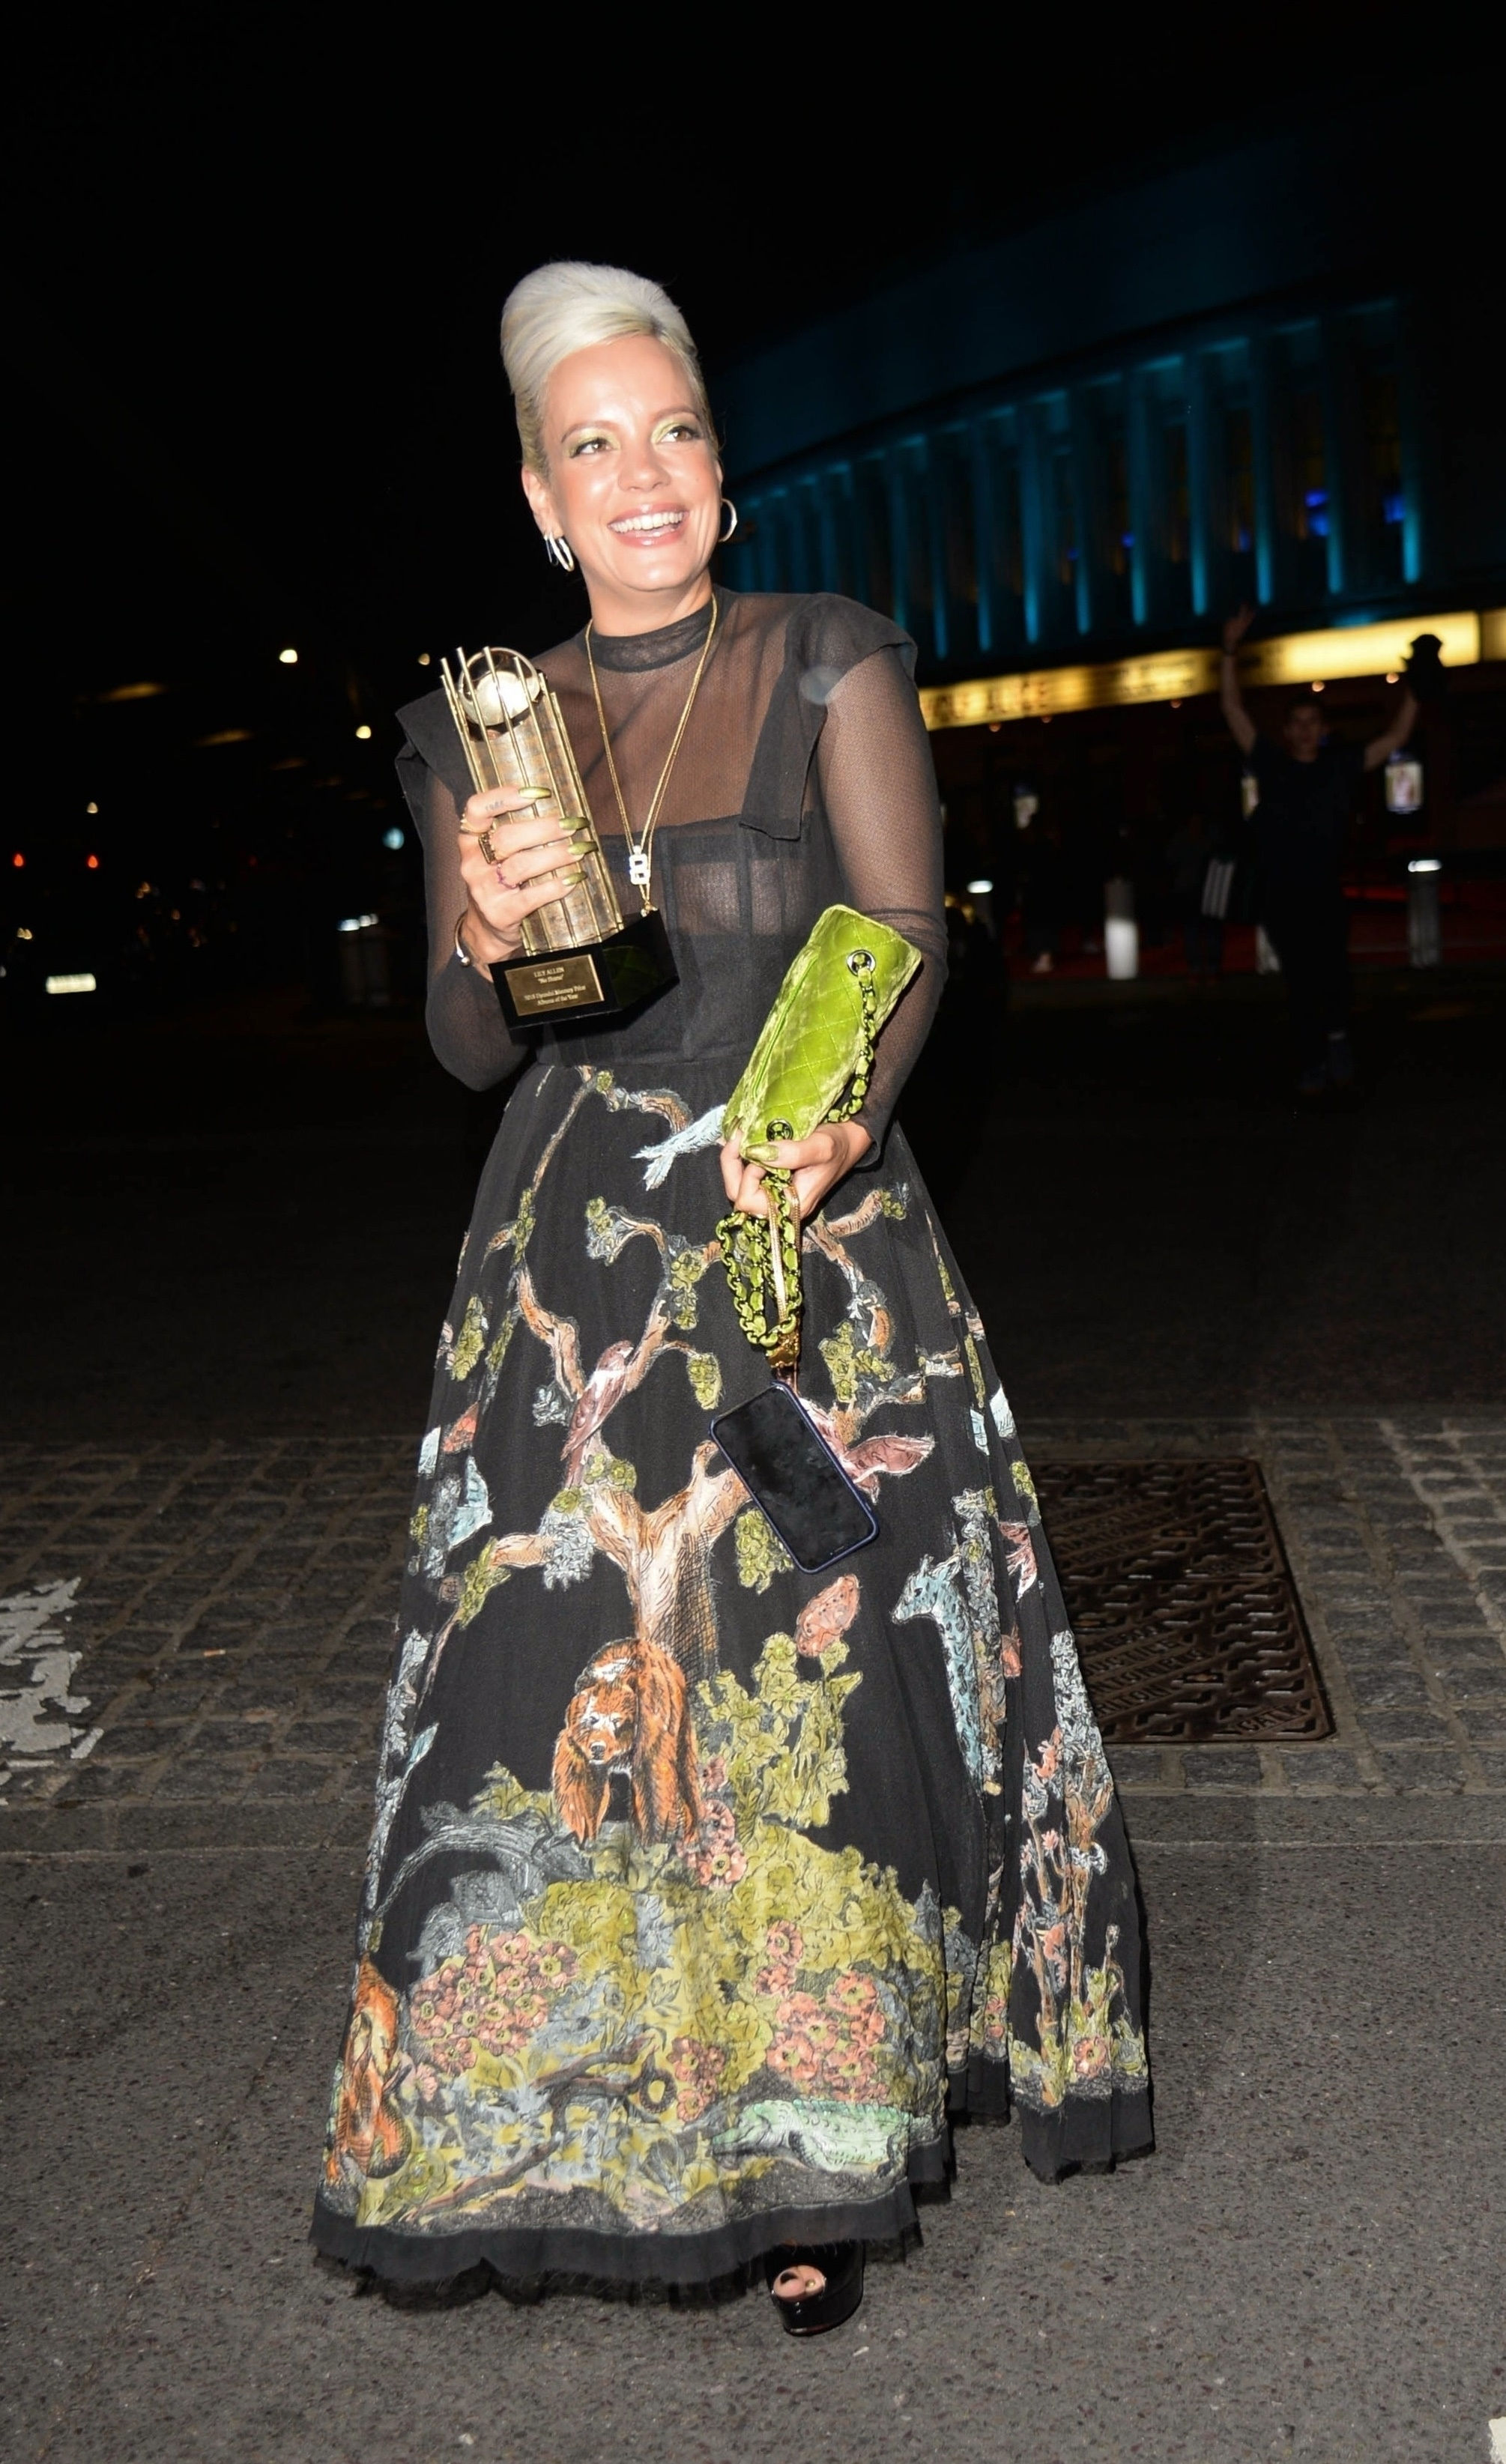 0919040453772_17_Lily-Allen-See-Through-TheFappeningBlog.com-18.jpg